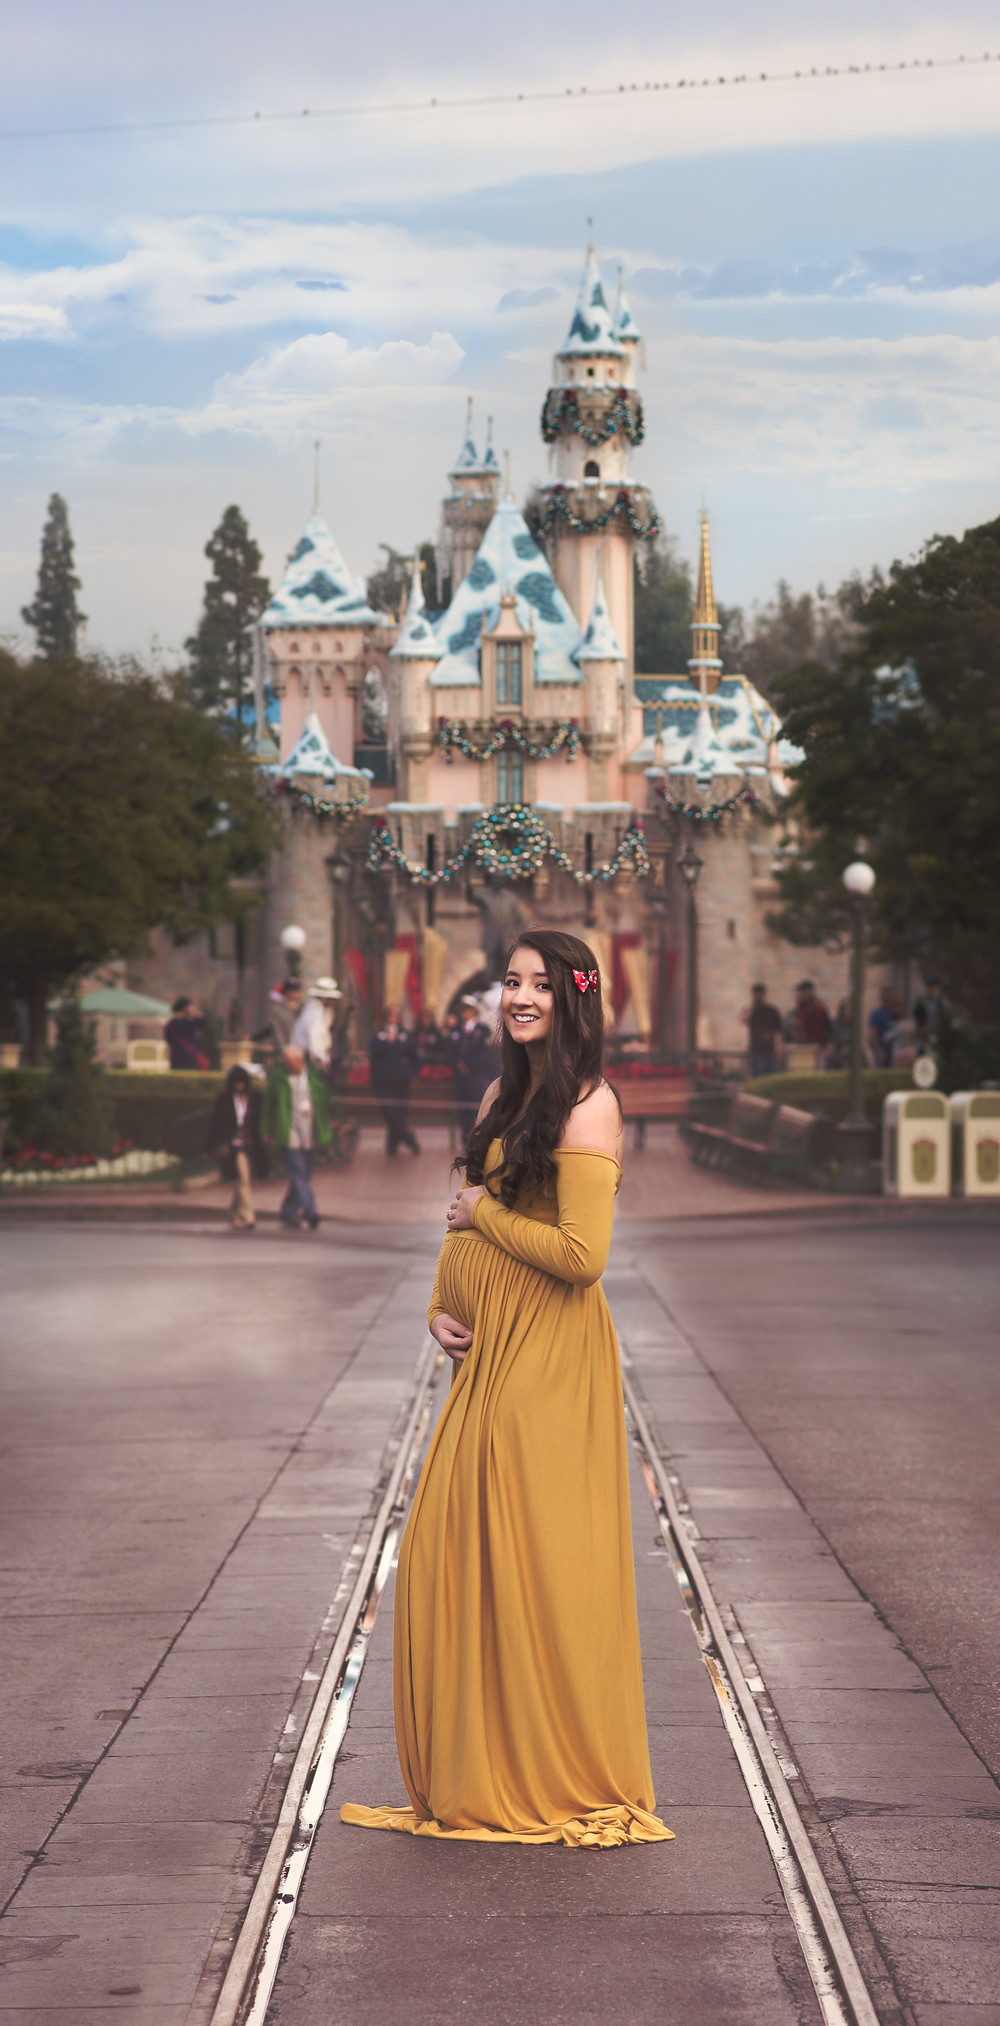 a princess and her castle!